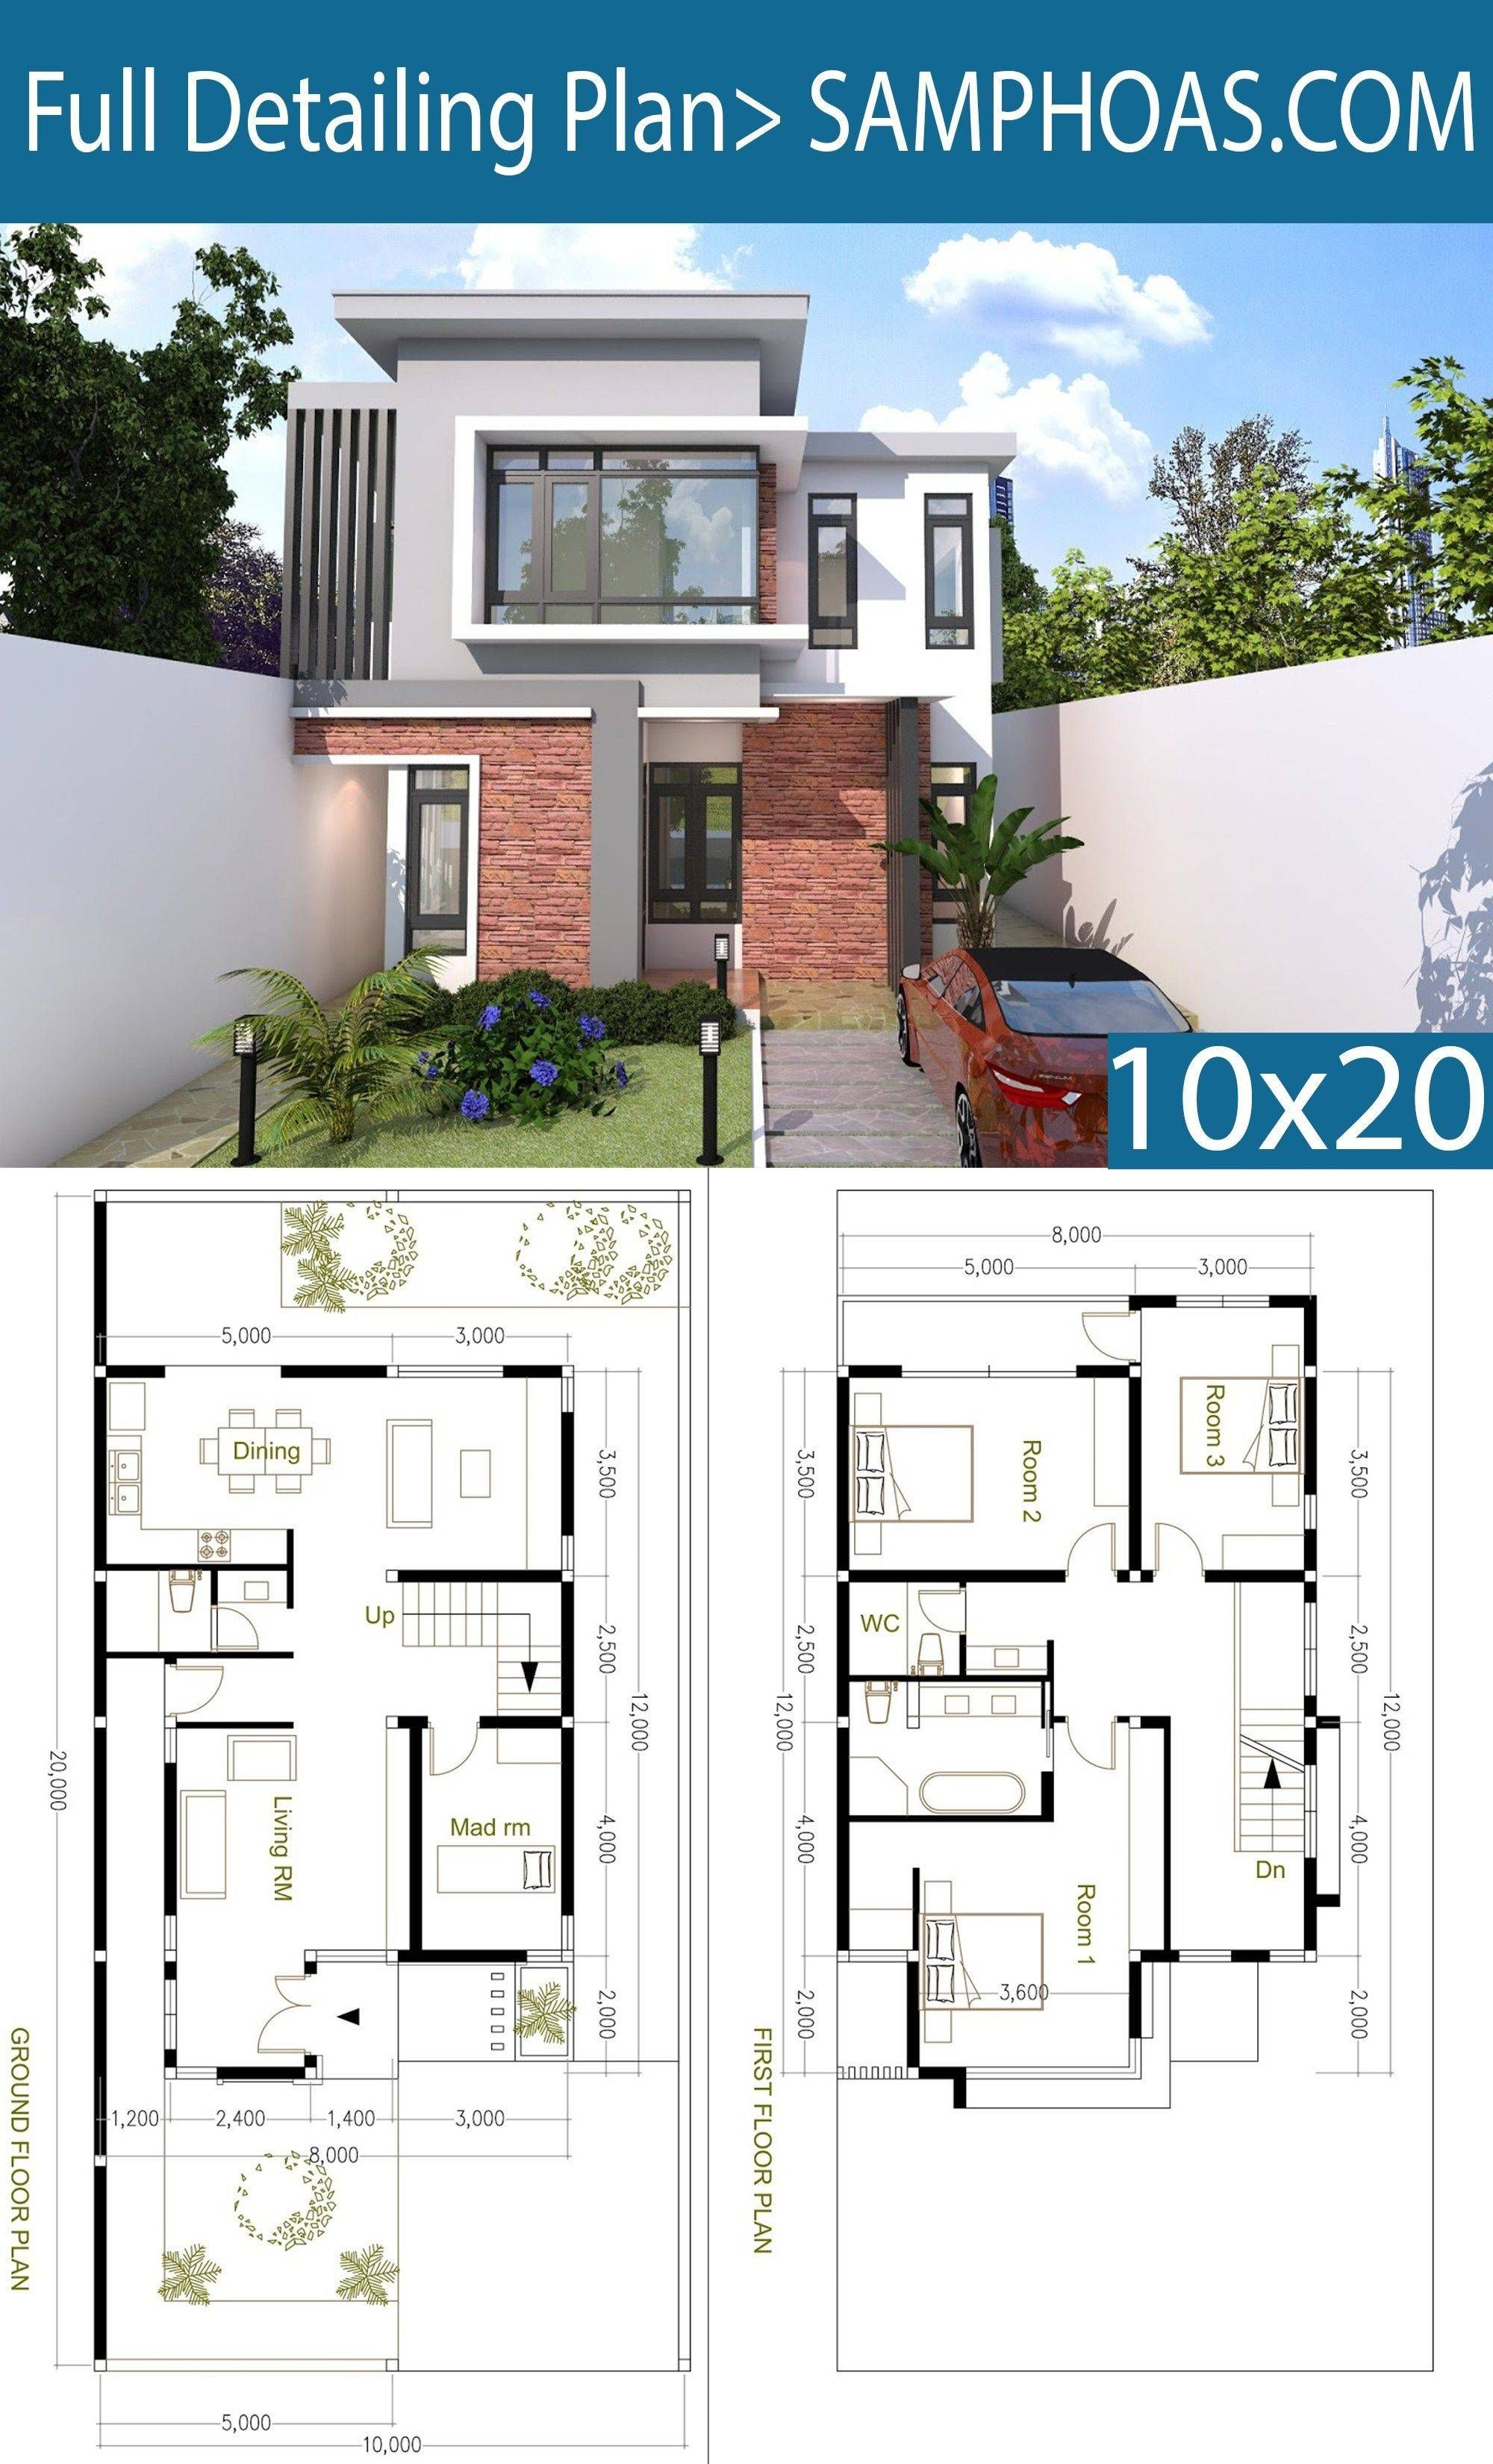 4 Bedroom Modern Home Plan Size 8x12m Modern House Floor Plans Modern Style House Plans Architectural House Plans